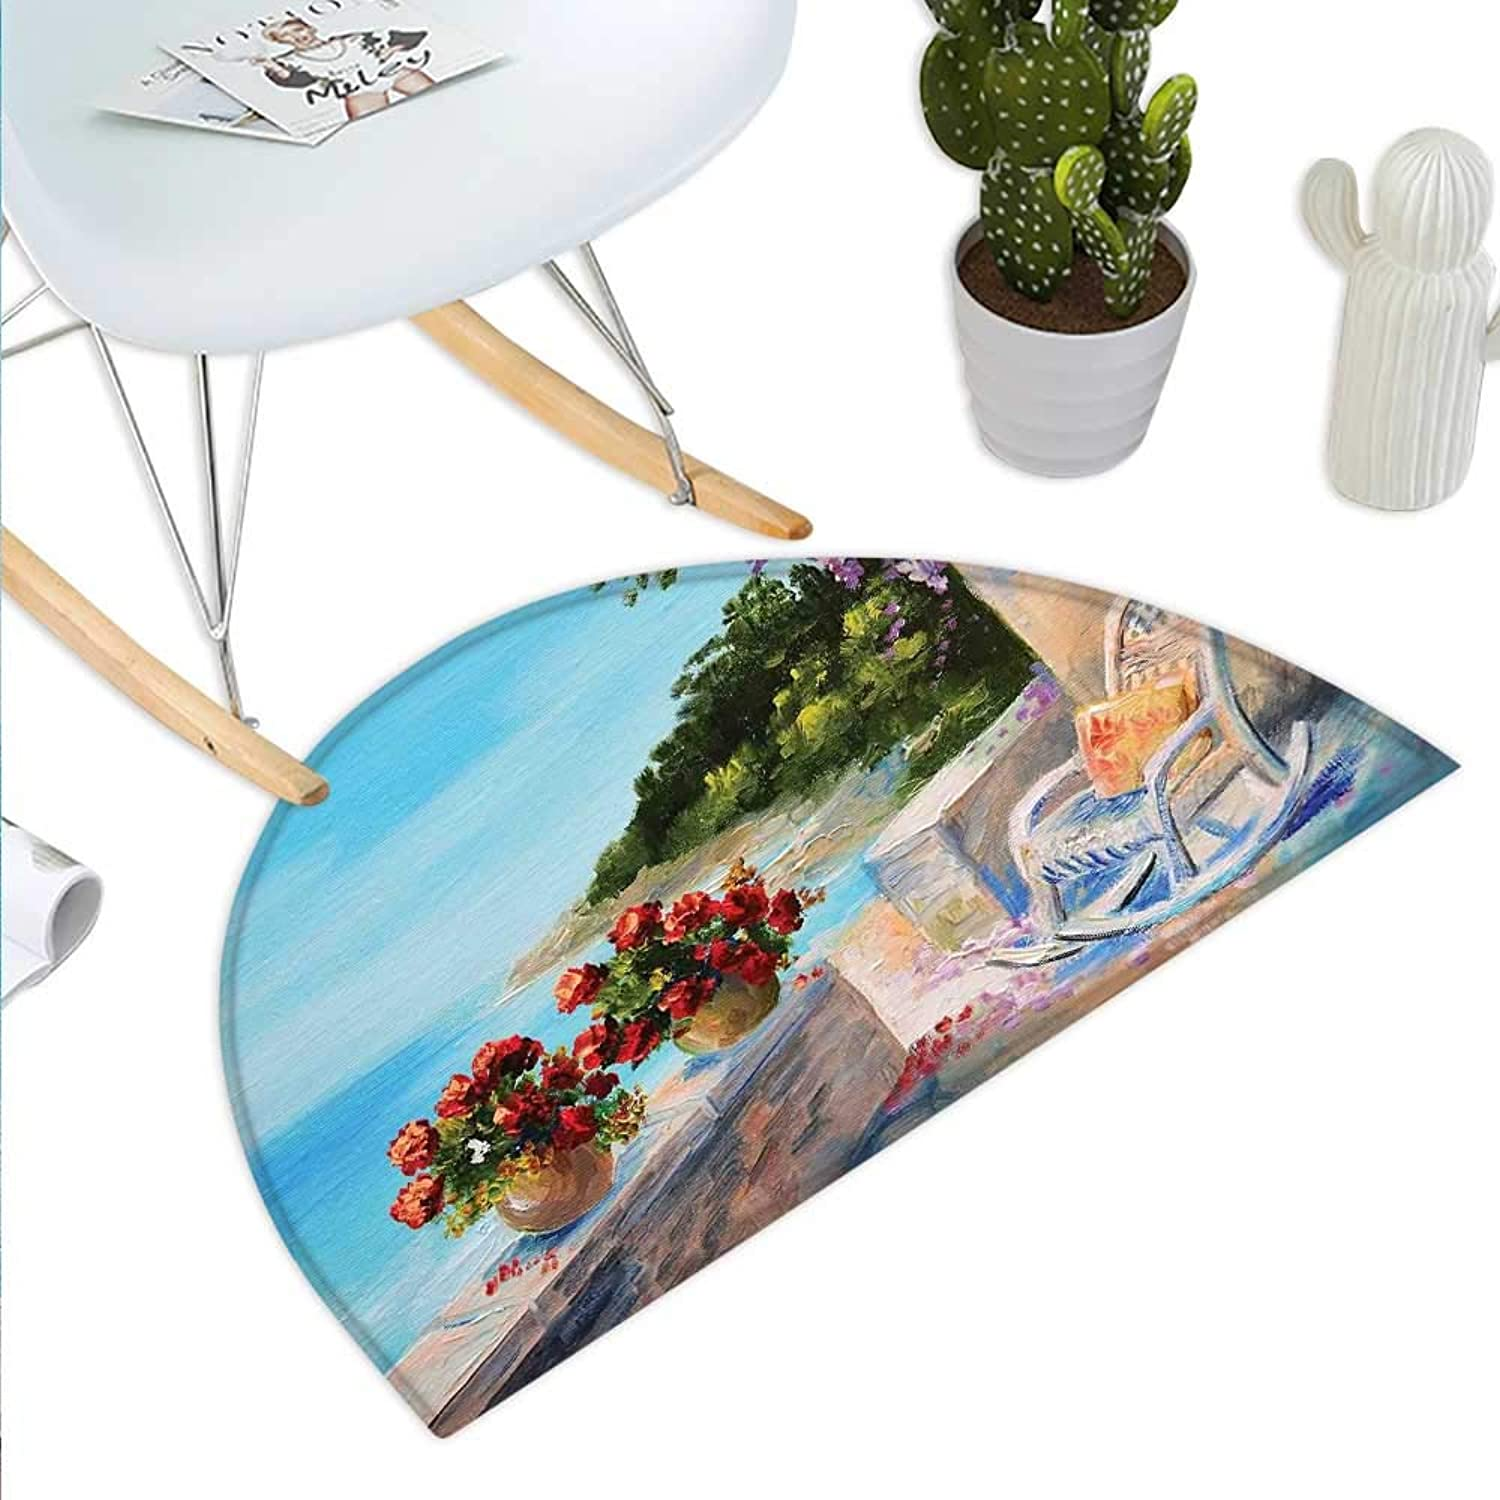 Seascape Semicircle Doormat Sea View Balcony with Cosy Rocking Chair Flowers in Summer Sky Oil Painting Style Halfmoon doormats H 23.6  xD 35.4  Multicolor